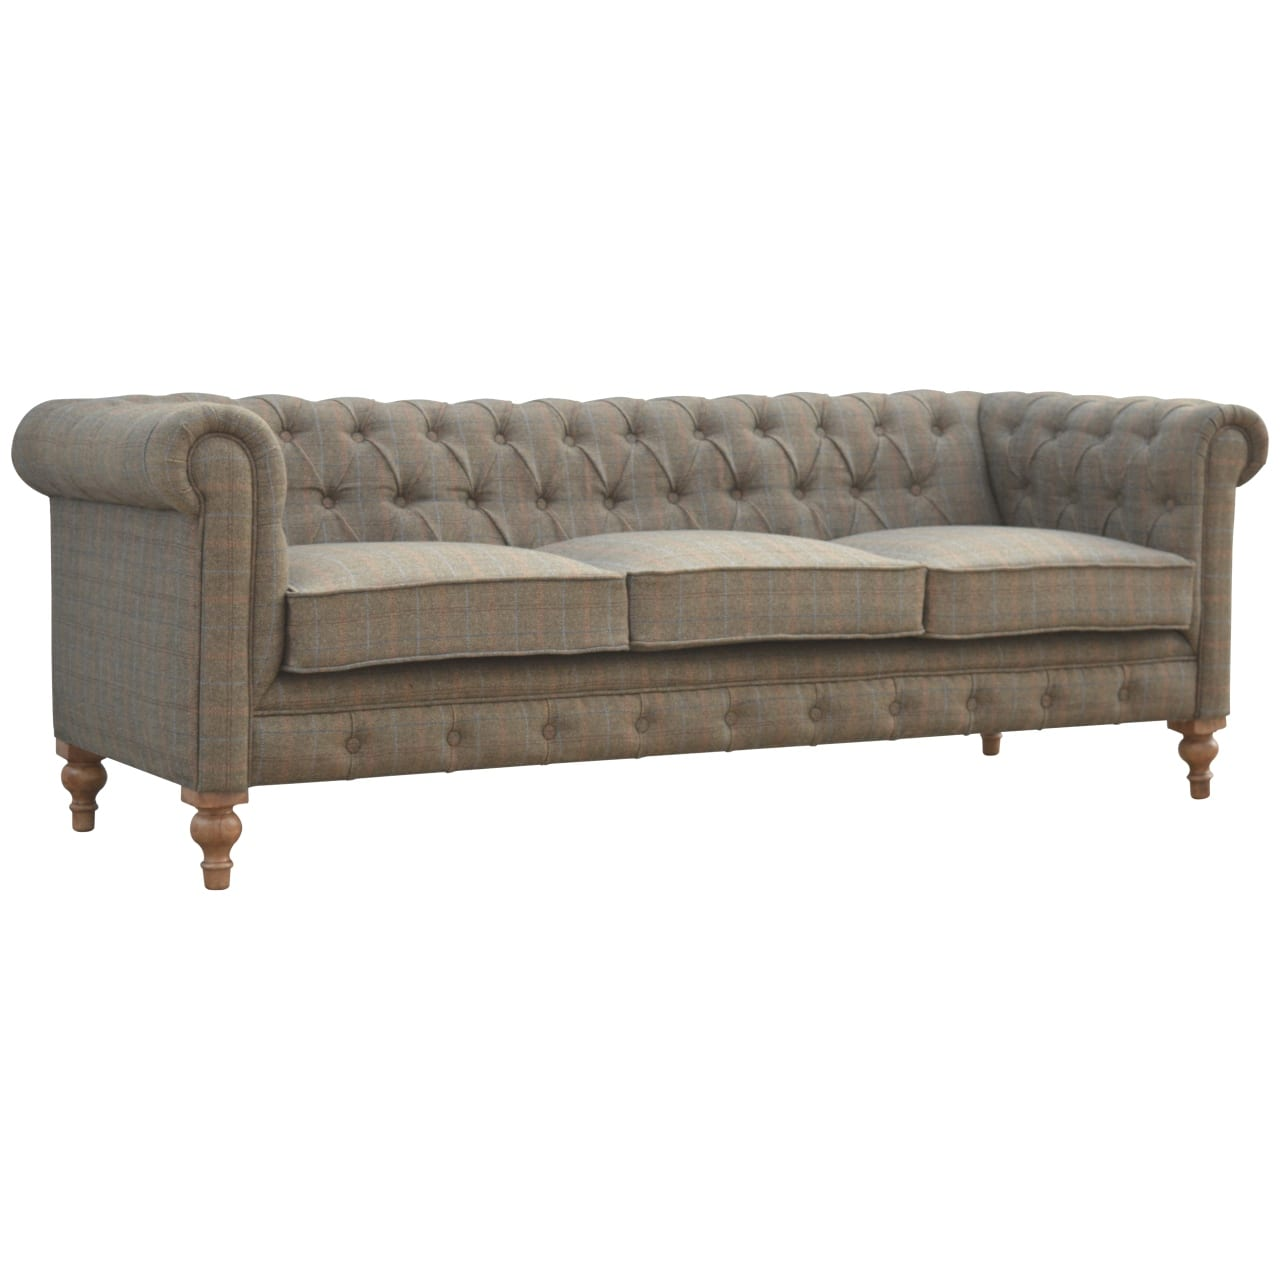 Artisan 3 Seater Chesterfield Sofa - Multi Tweed | Scottish Antique ...